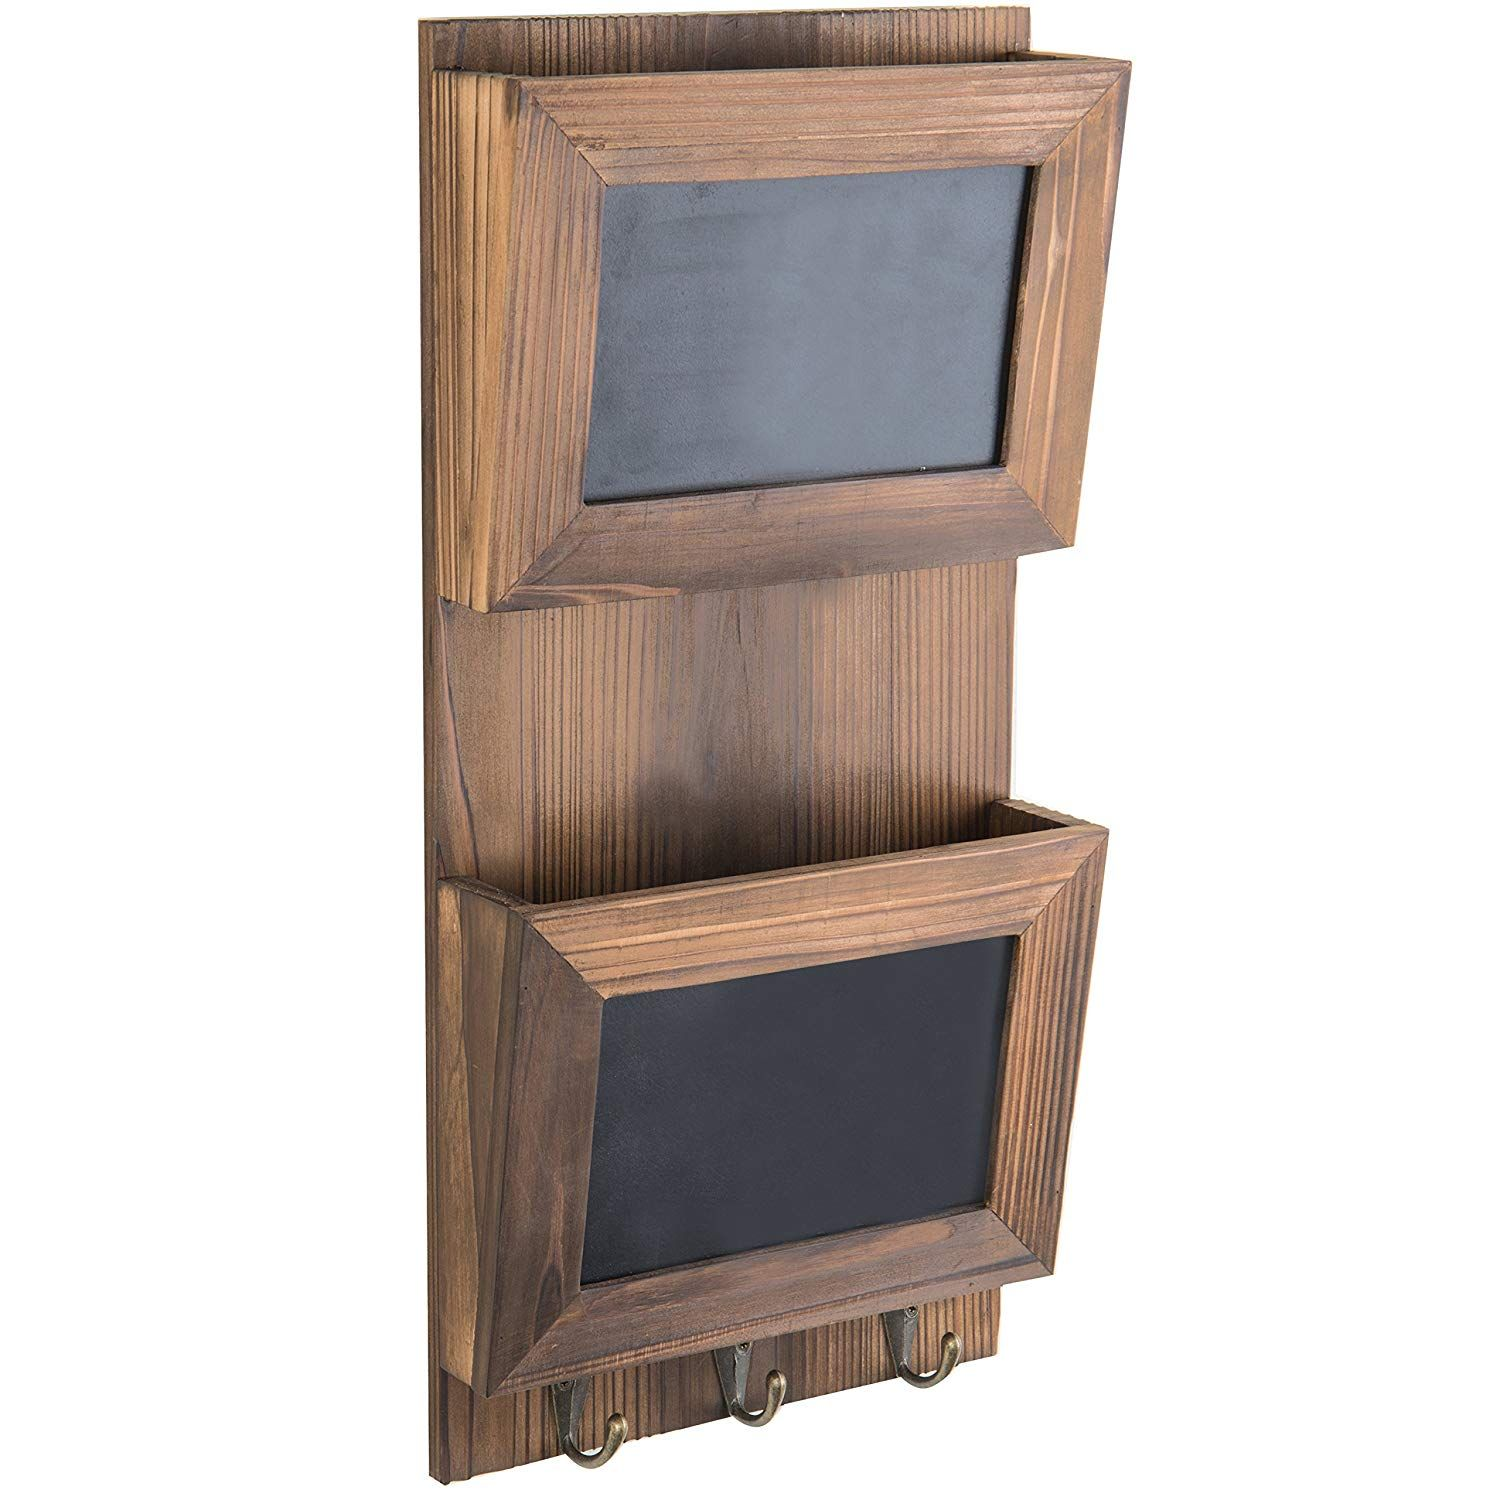 MyGift WallMounted Wood Mail Sorter with